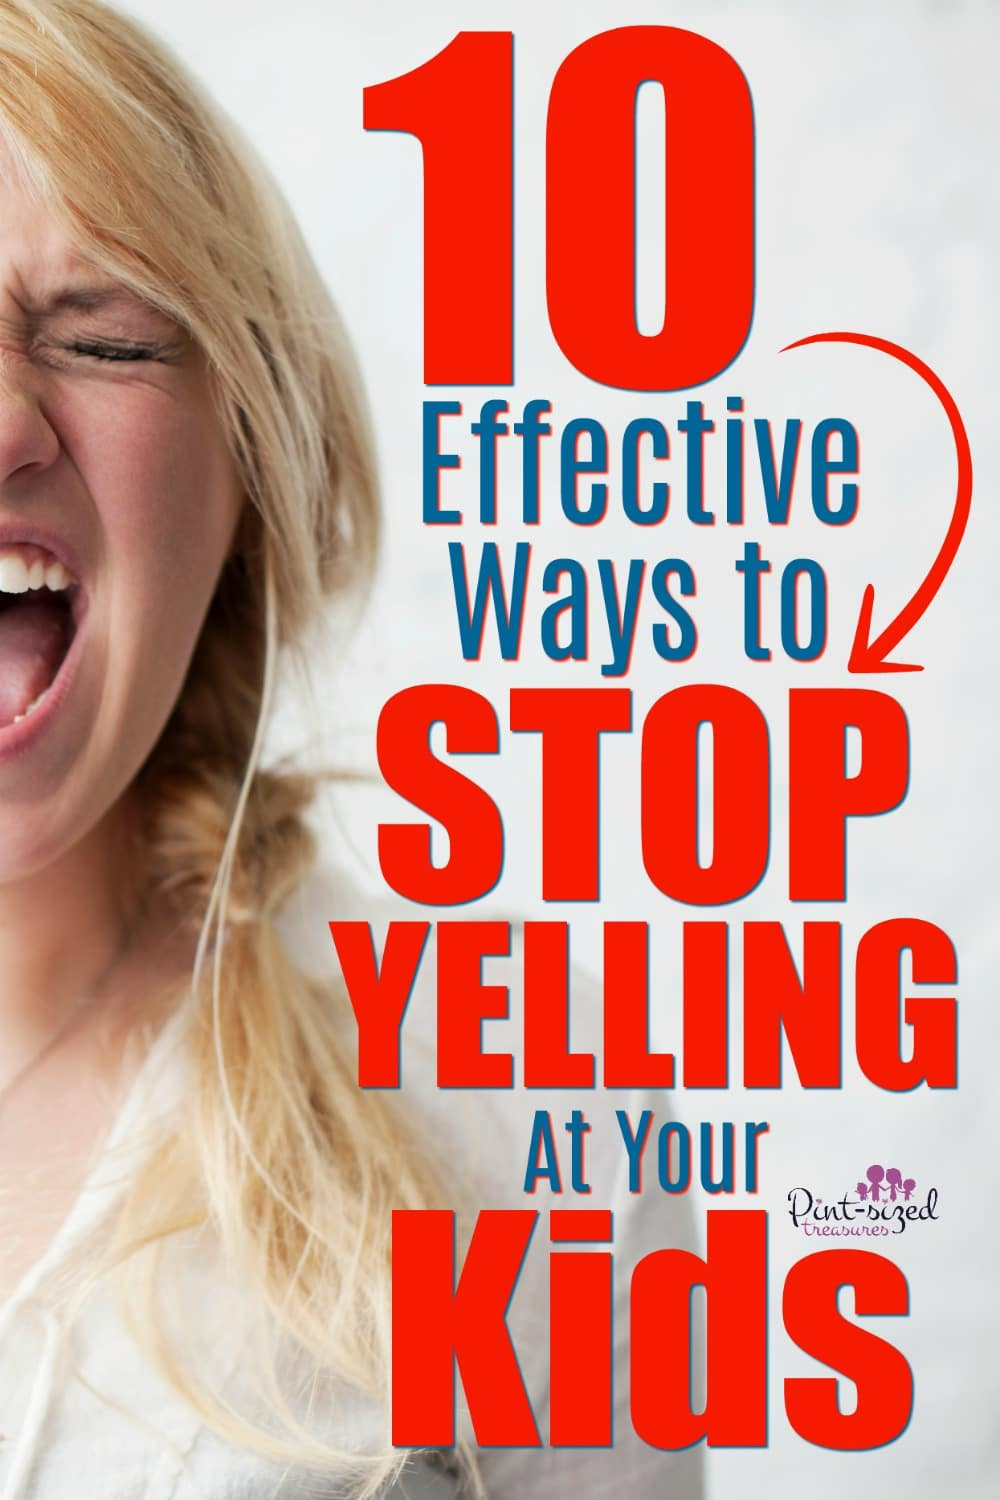 10 Effective Ways to Stop Yelling at Your Kids · Pint-sized